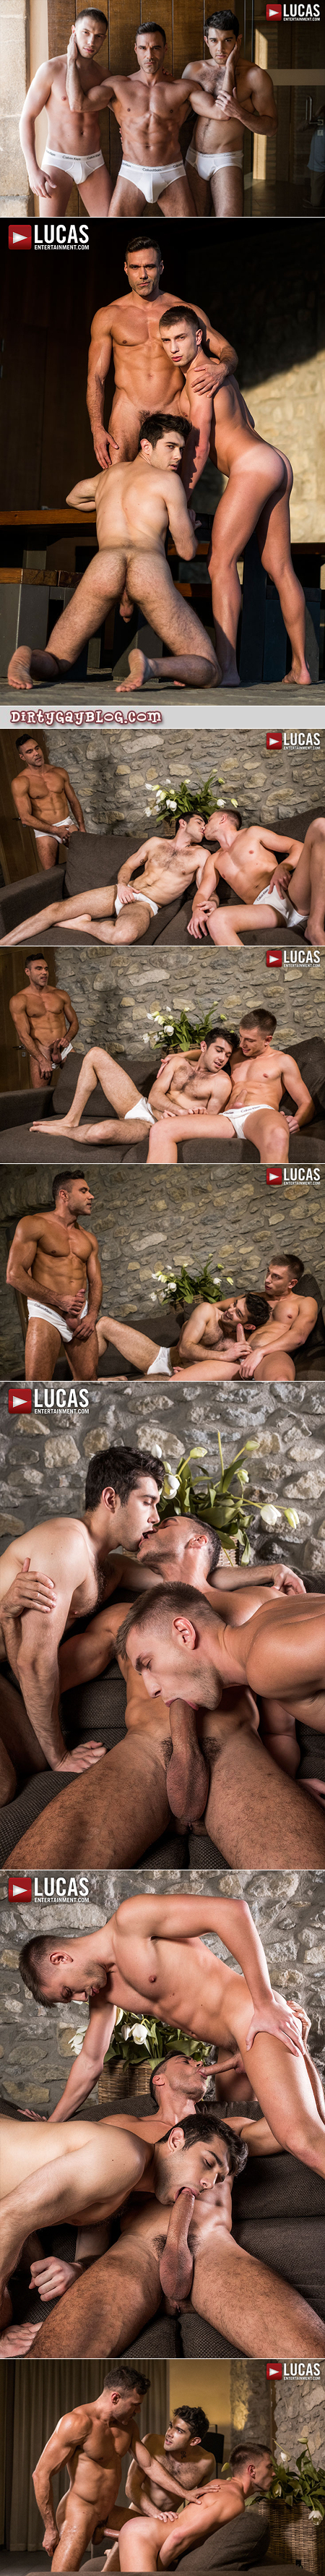 Muscle Daddy fucking two fit younger guys bareback.